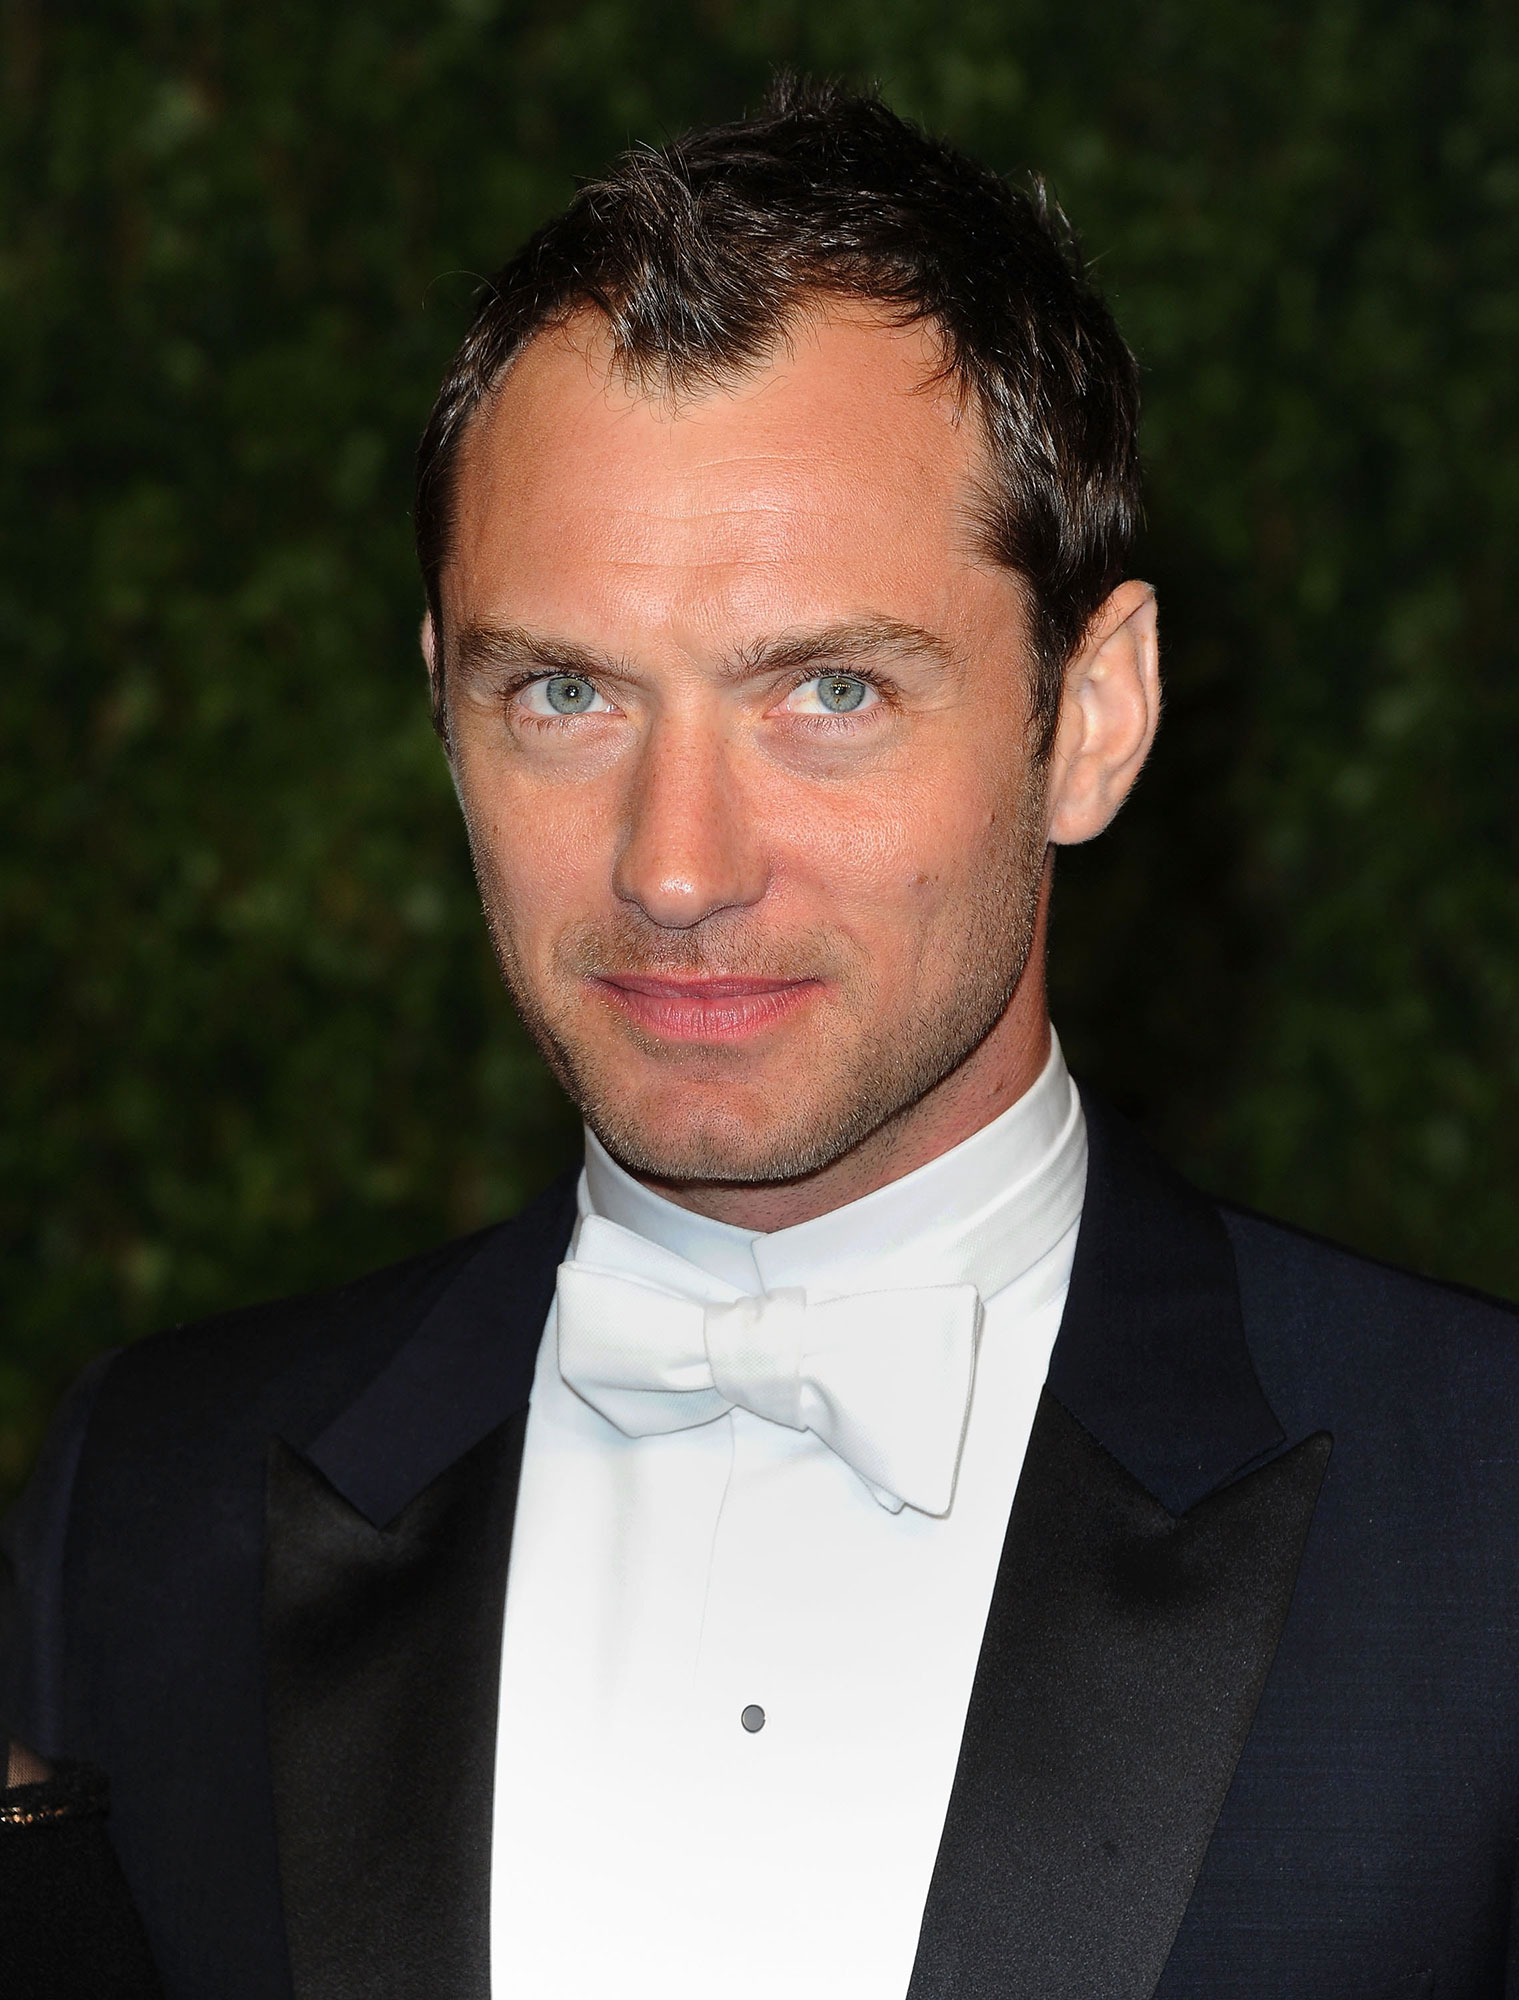 Jude Law - Stars Who Have Never Won Oscars - Law has struck out two times in the Oscar-winning department: The Alfie star lost out for Best Actor in a Leading Role for Cold Mountain in 2003 and Best Actor in a Supporting Role for The Talented Mr. Ripley in 1999.